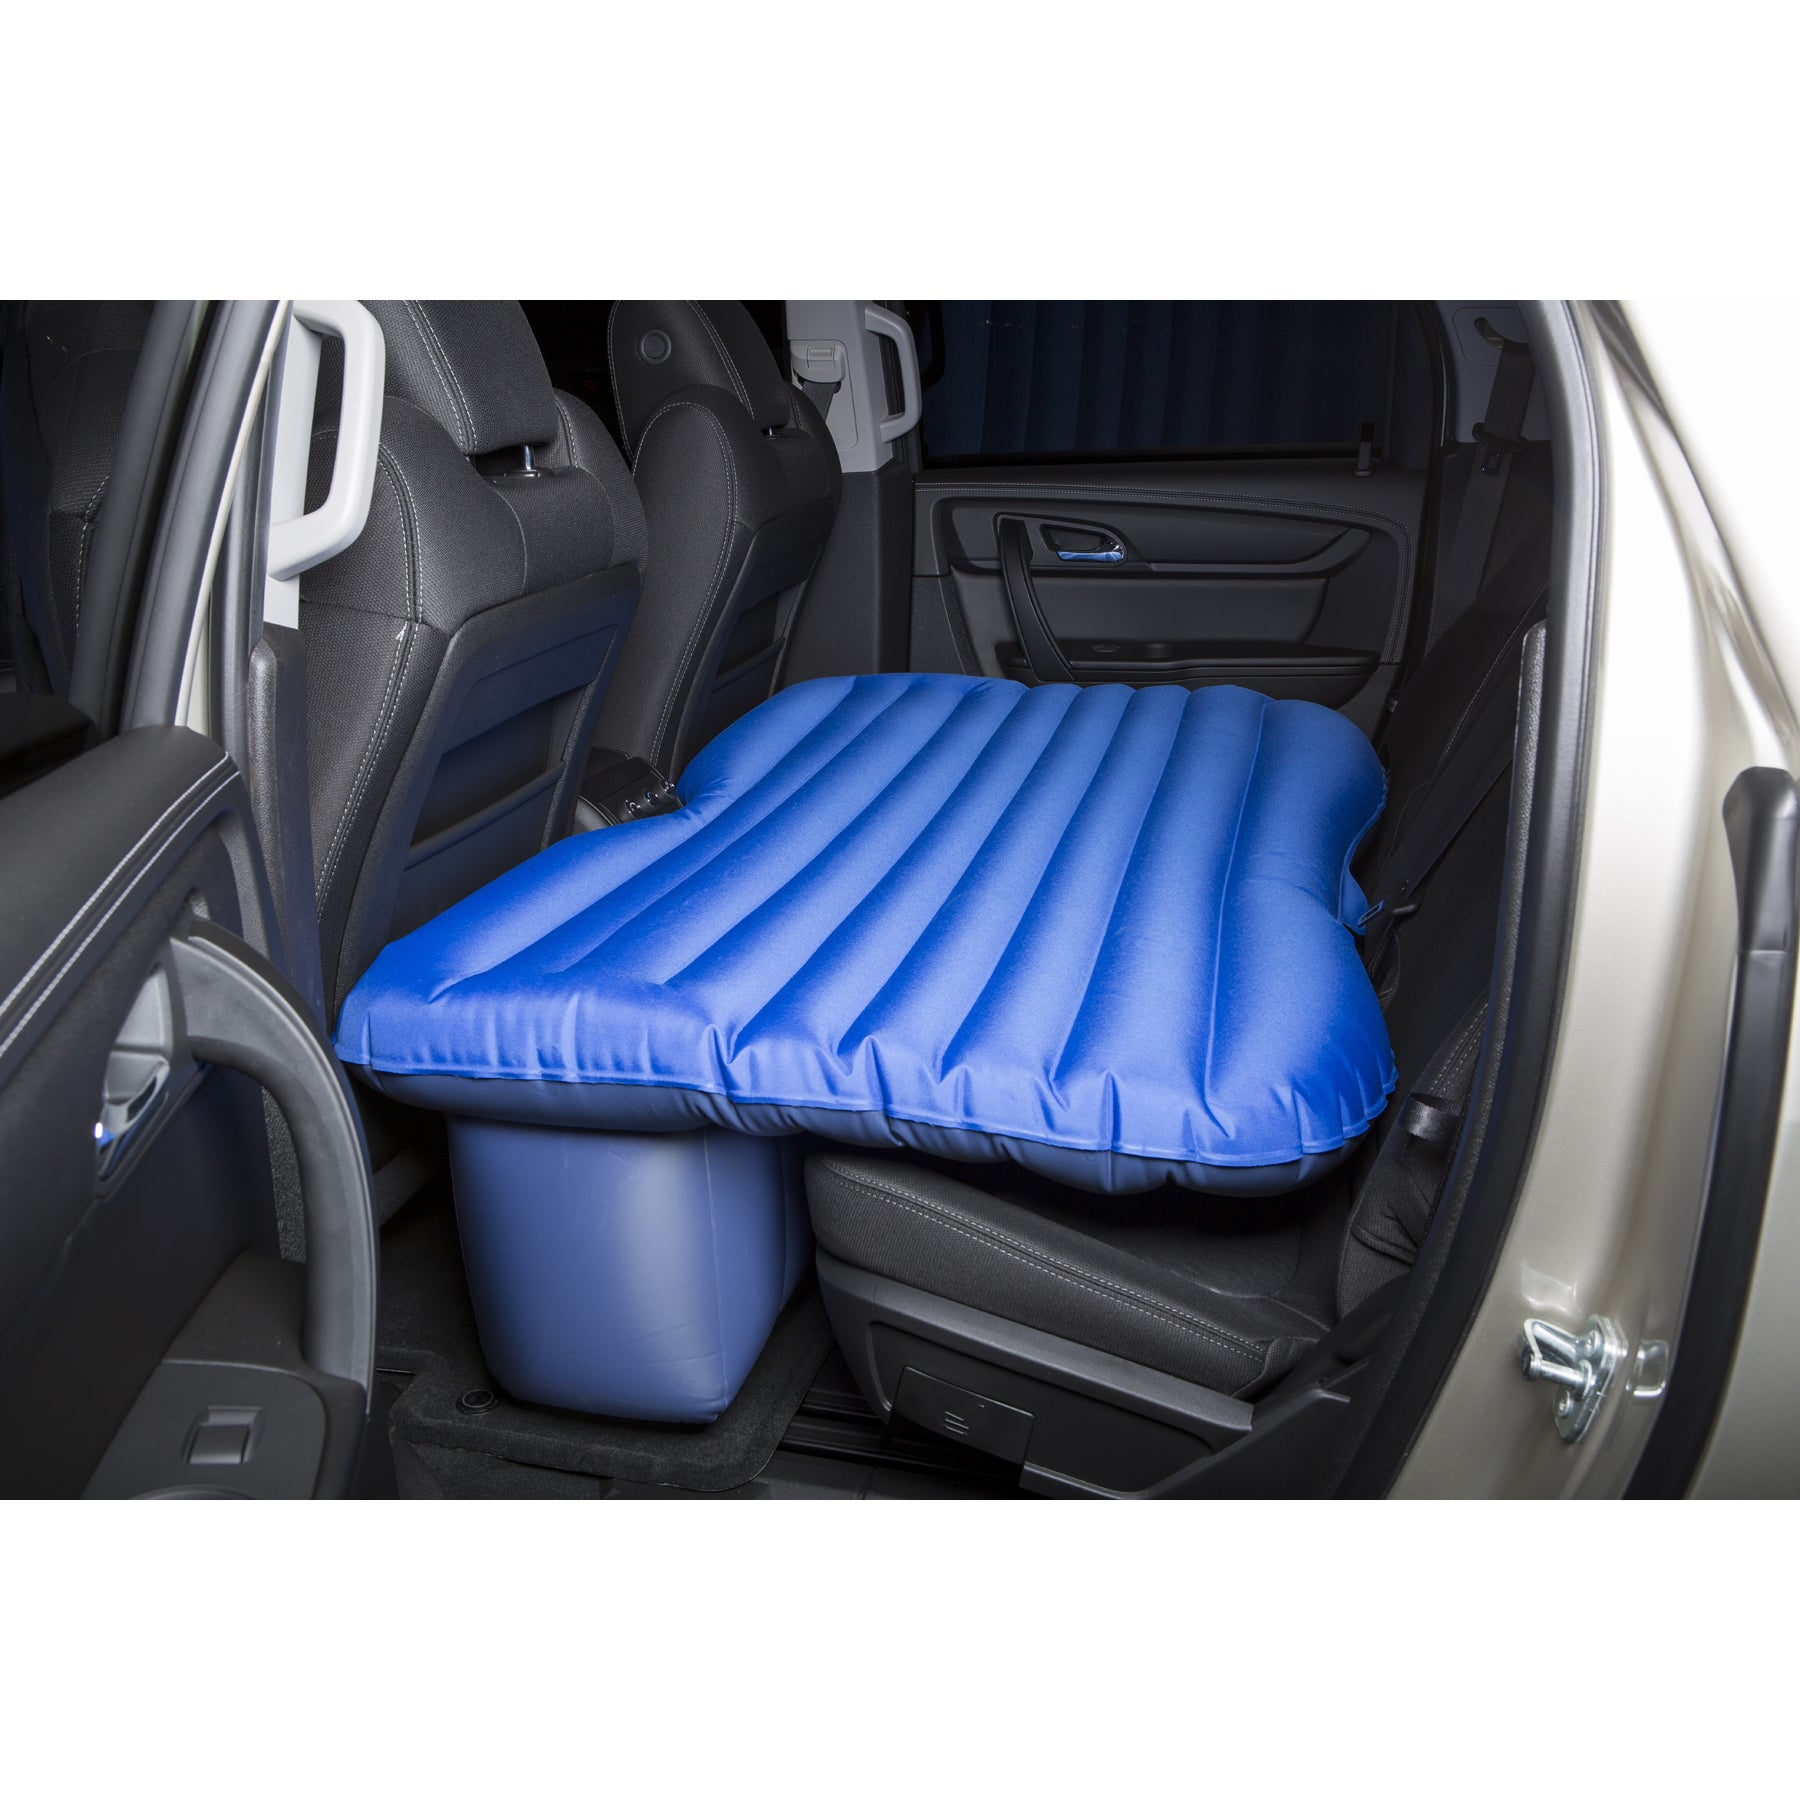 mattressairbedz mattress truck airbedz blue ppi frontier original nissan air bed tents